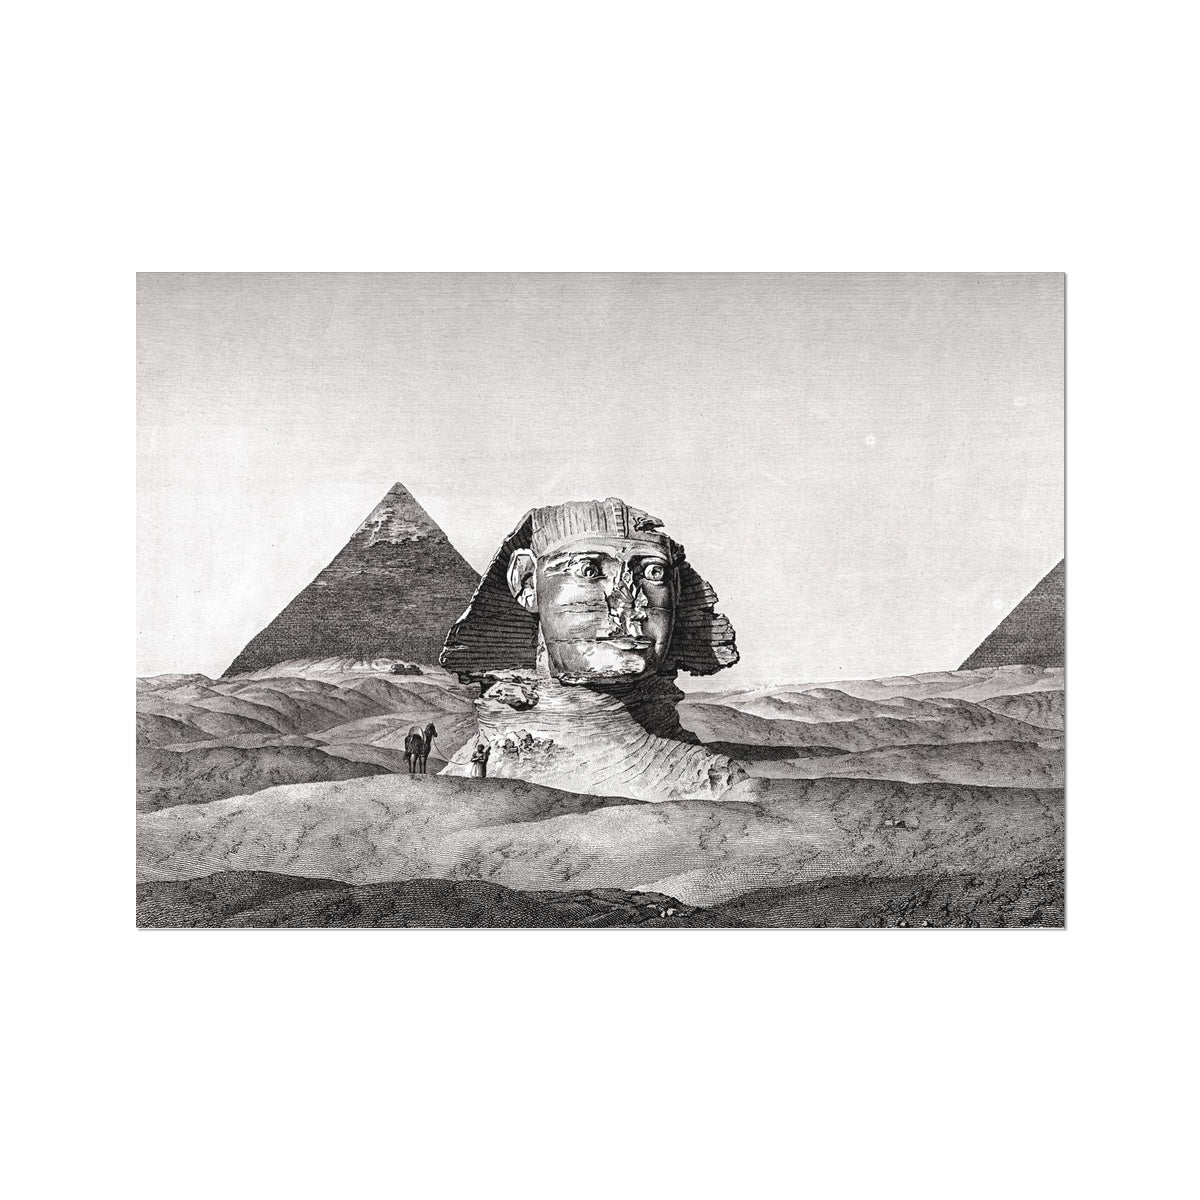 View of the Sphinx 2 - Memphis Egypt -  Etching Paper Print